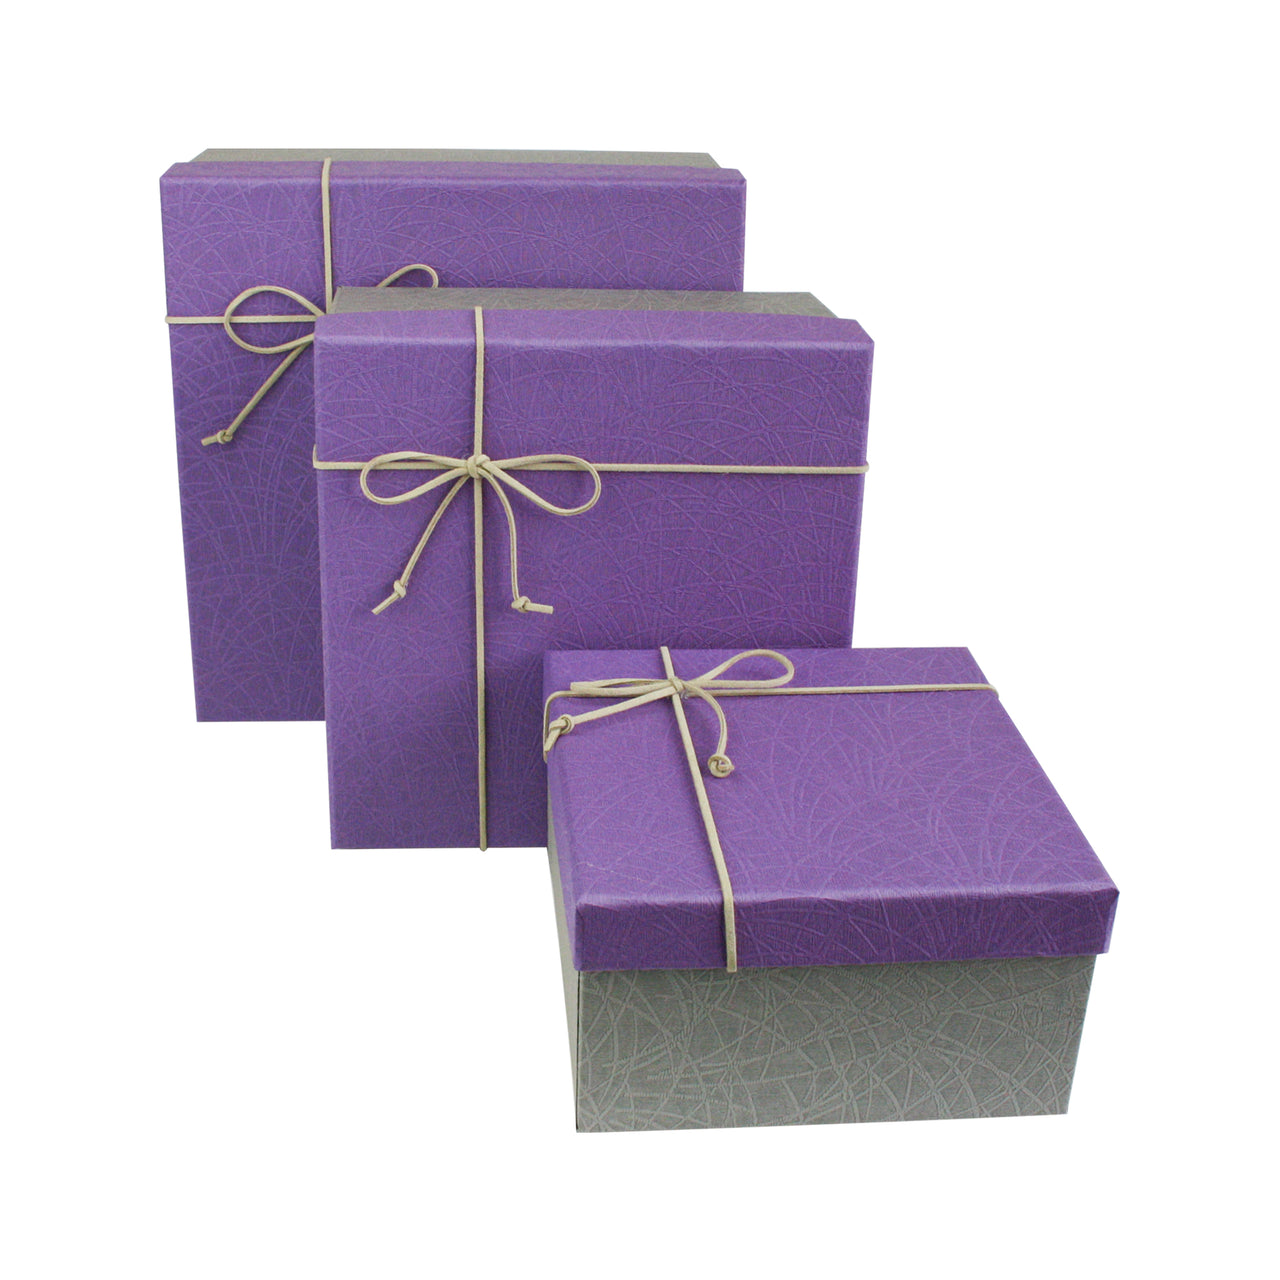 Grey Purple Gift Box - Set Of 3